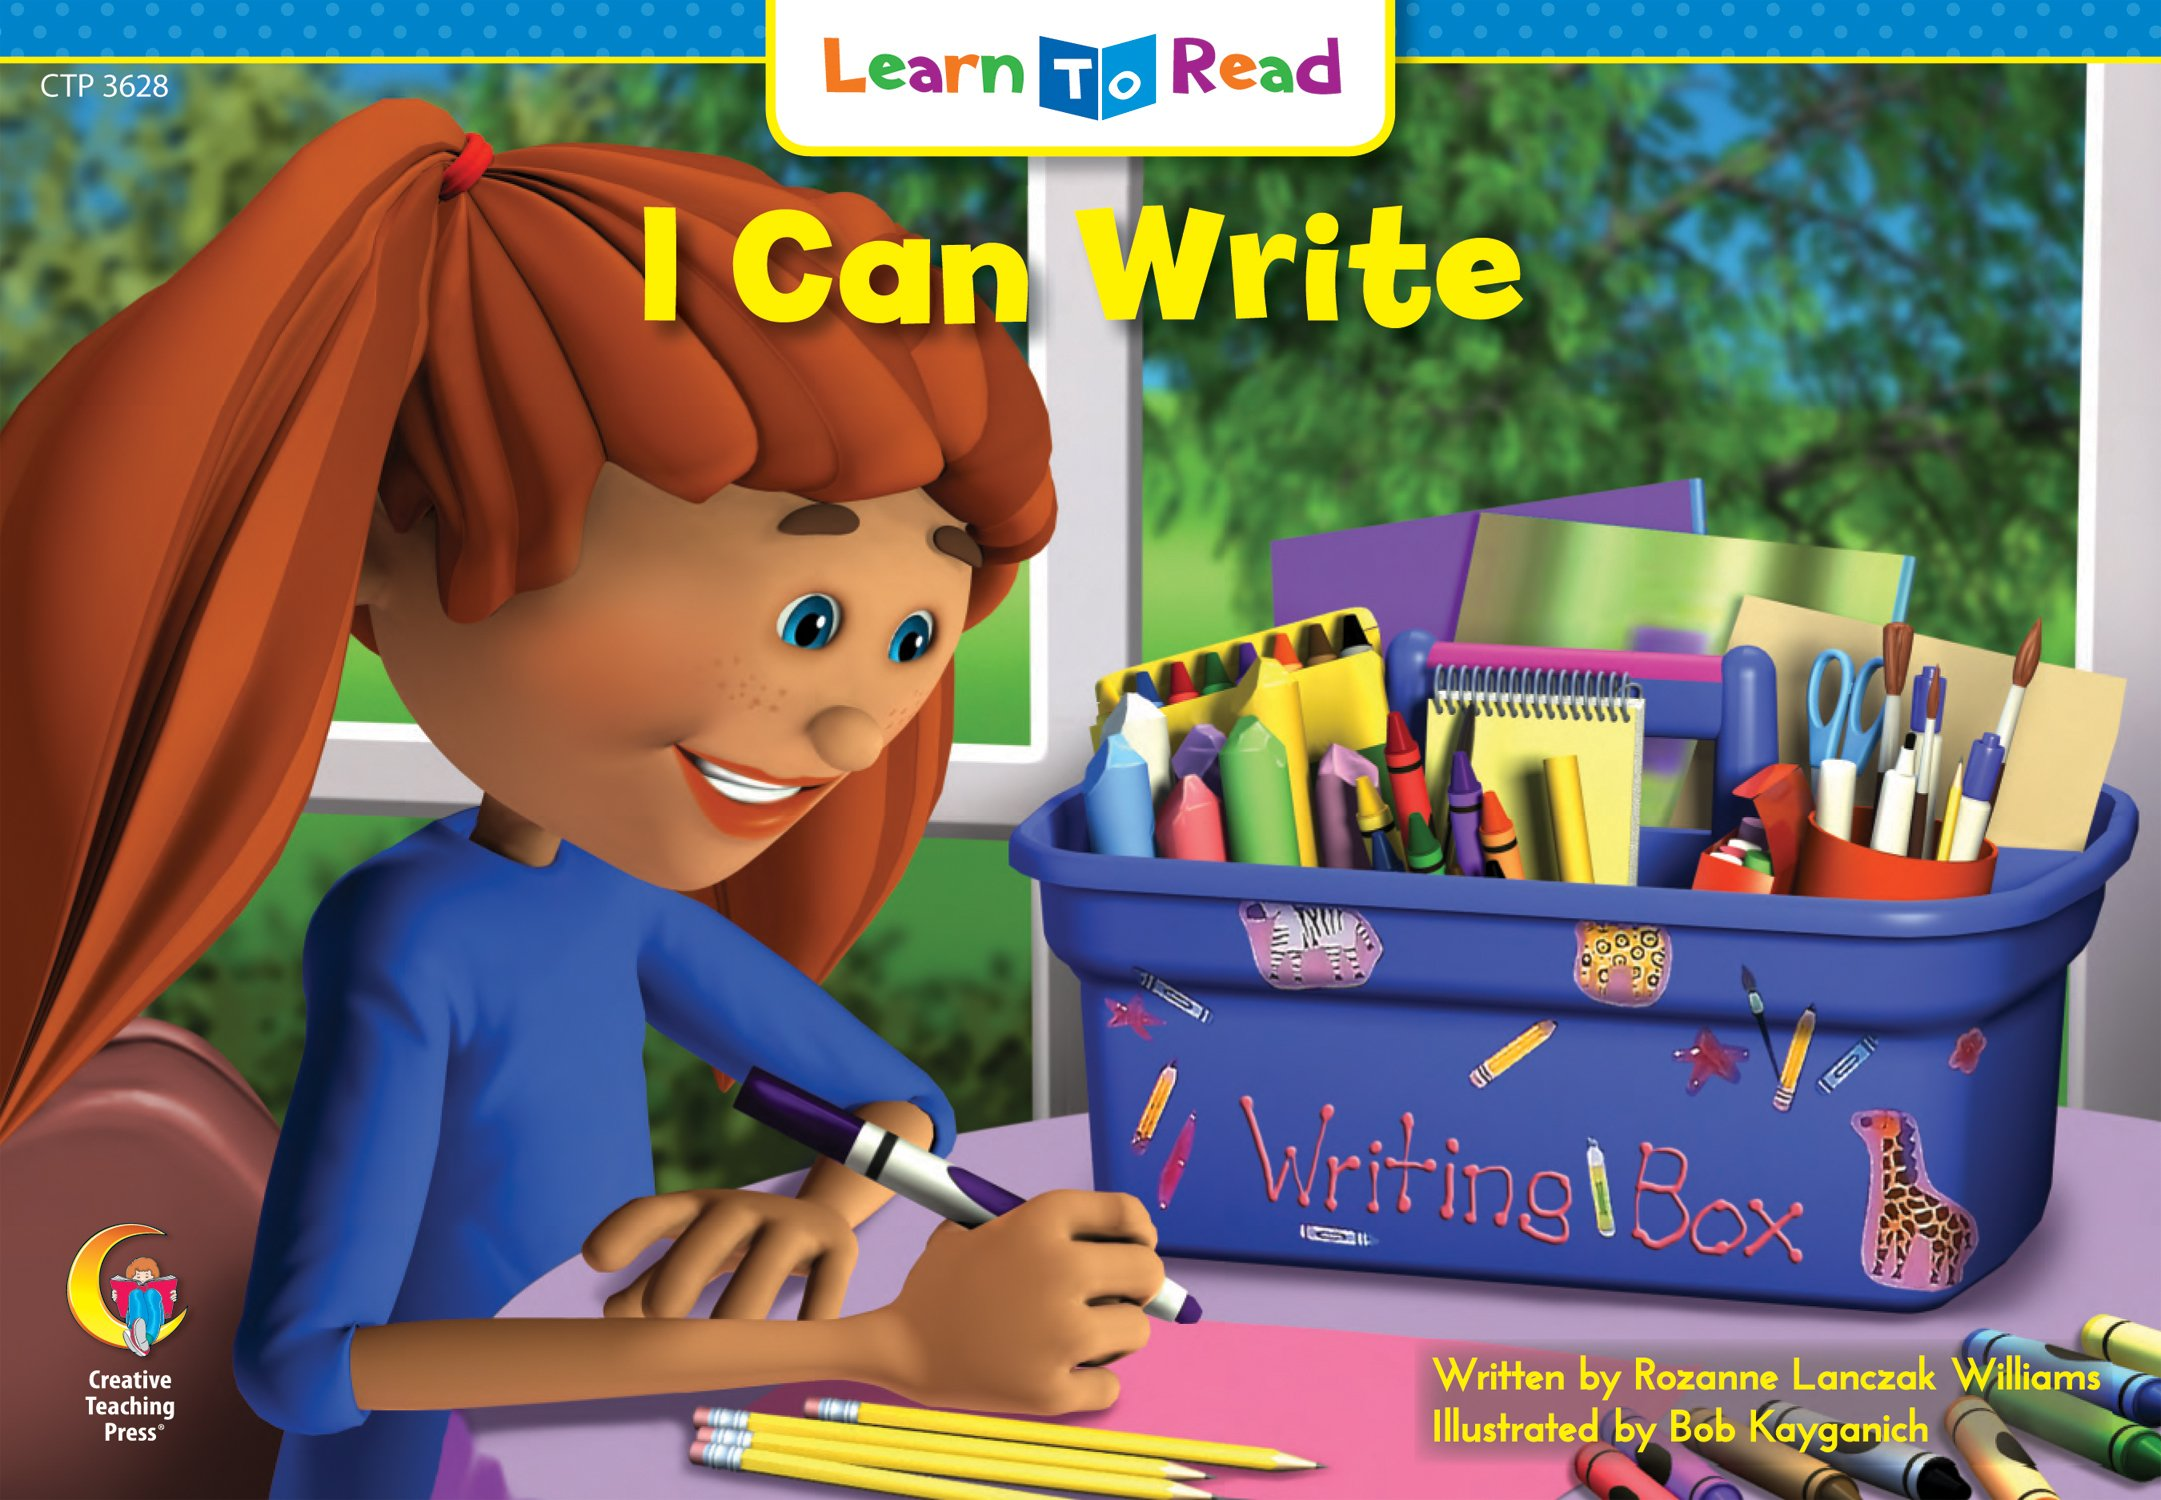 I Can Write (Emergent Reader Book Series)